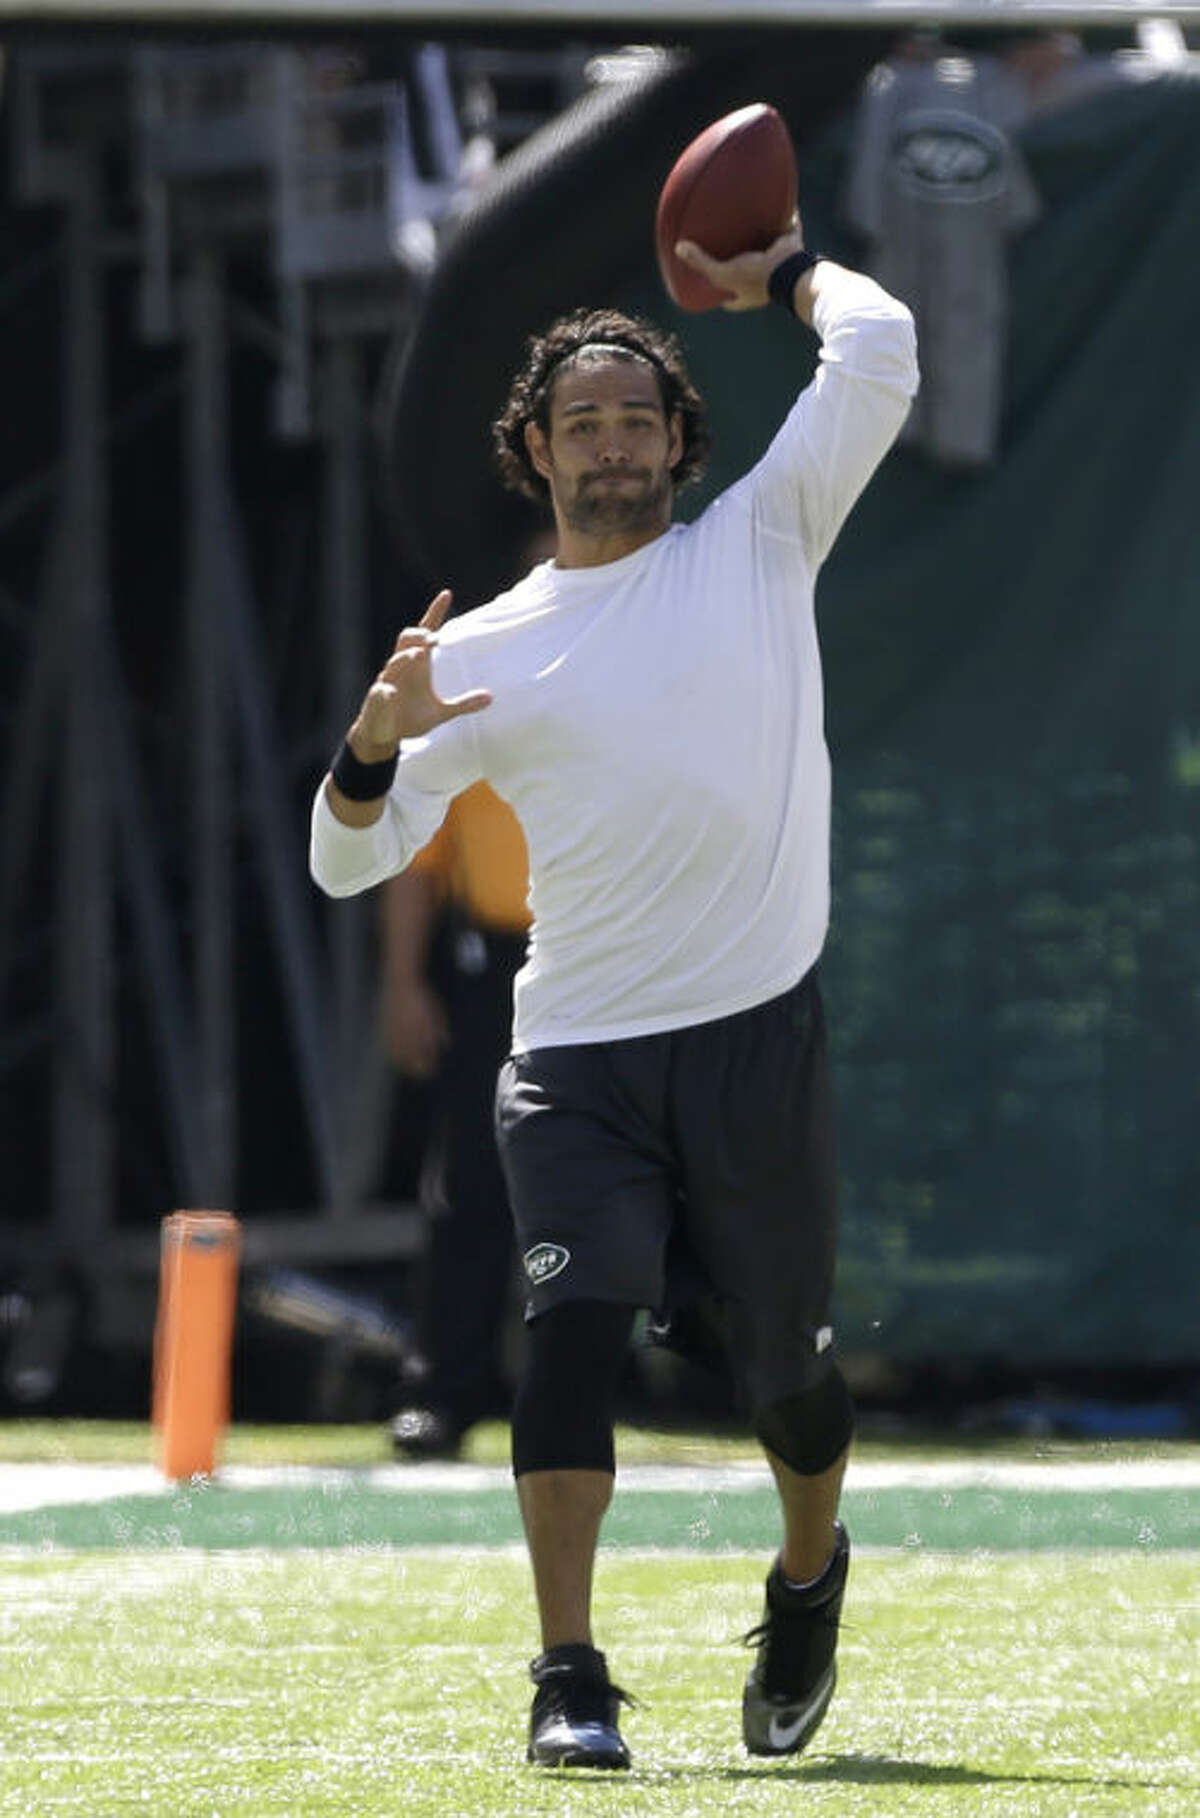 New York Jets quarterback Mark Sanchez throws a left-handed pass before the Jets' NFL football game against the Tampa Bay Buccaneers, Sunday, Sept. 8, 2013, in East Rutherford, N.J. Sanchez was not scheduled to play in the Jets' season-opener because his throwing arm is injured. (AP Photo/Julio Cortez)